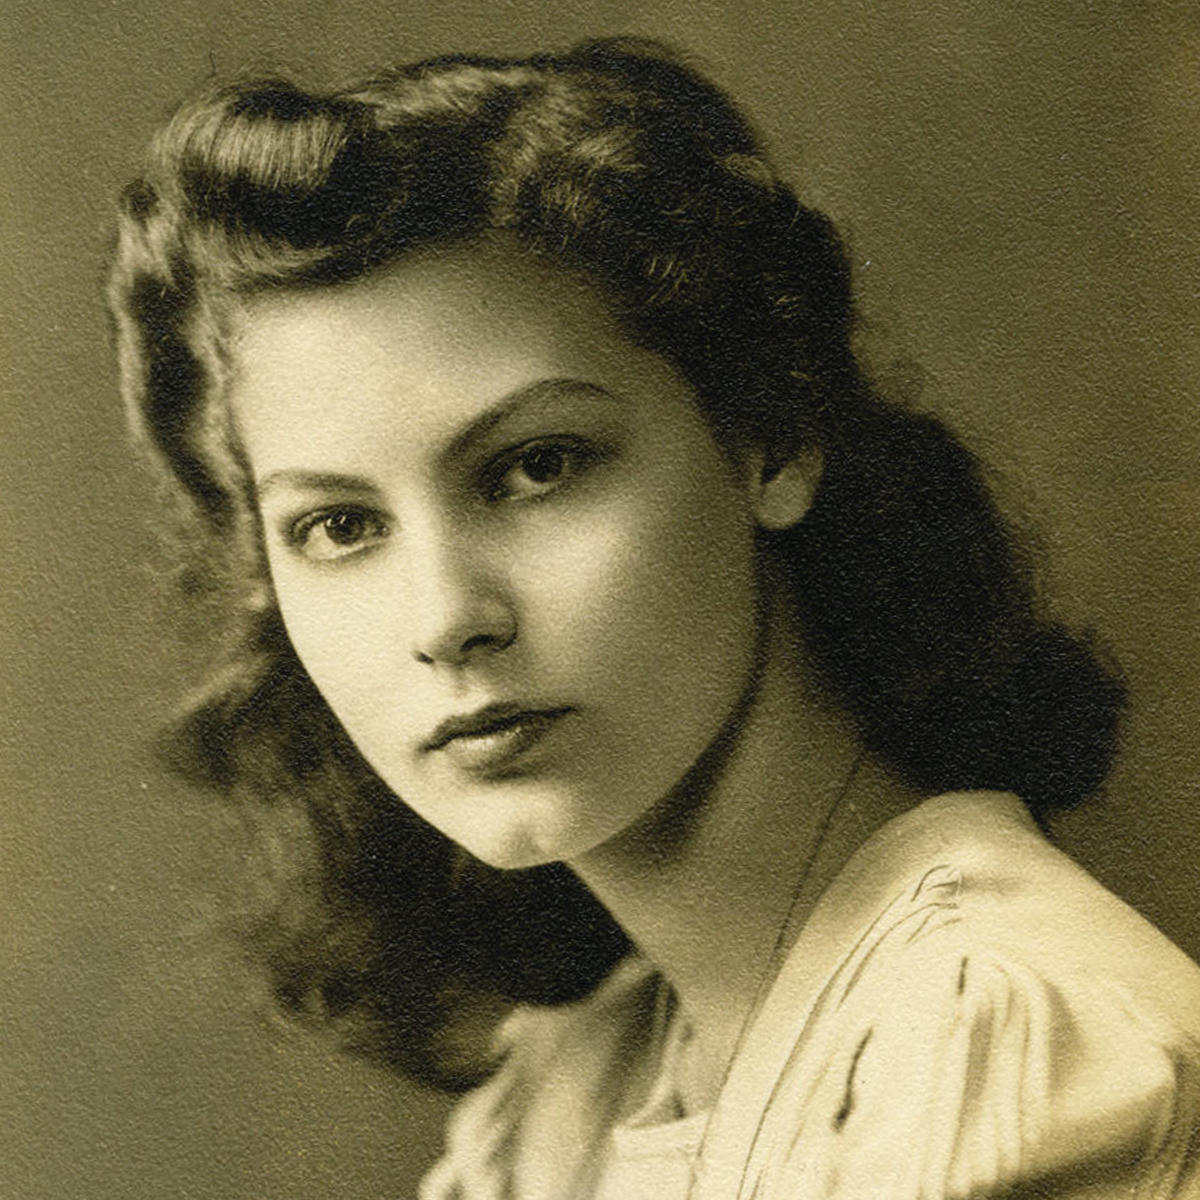 Young Ava Gardner Age 15